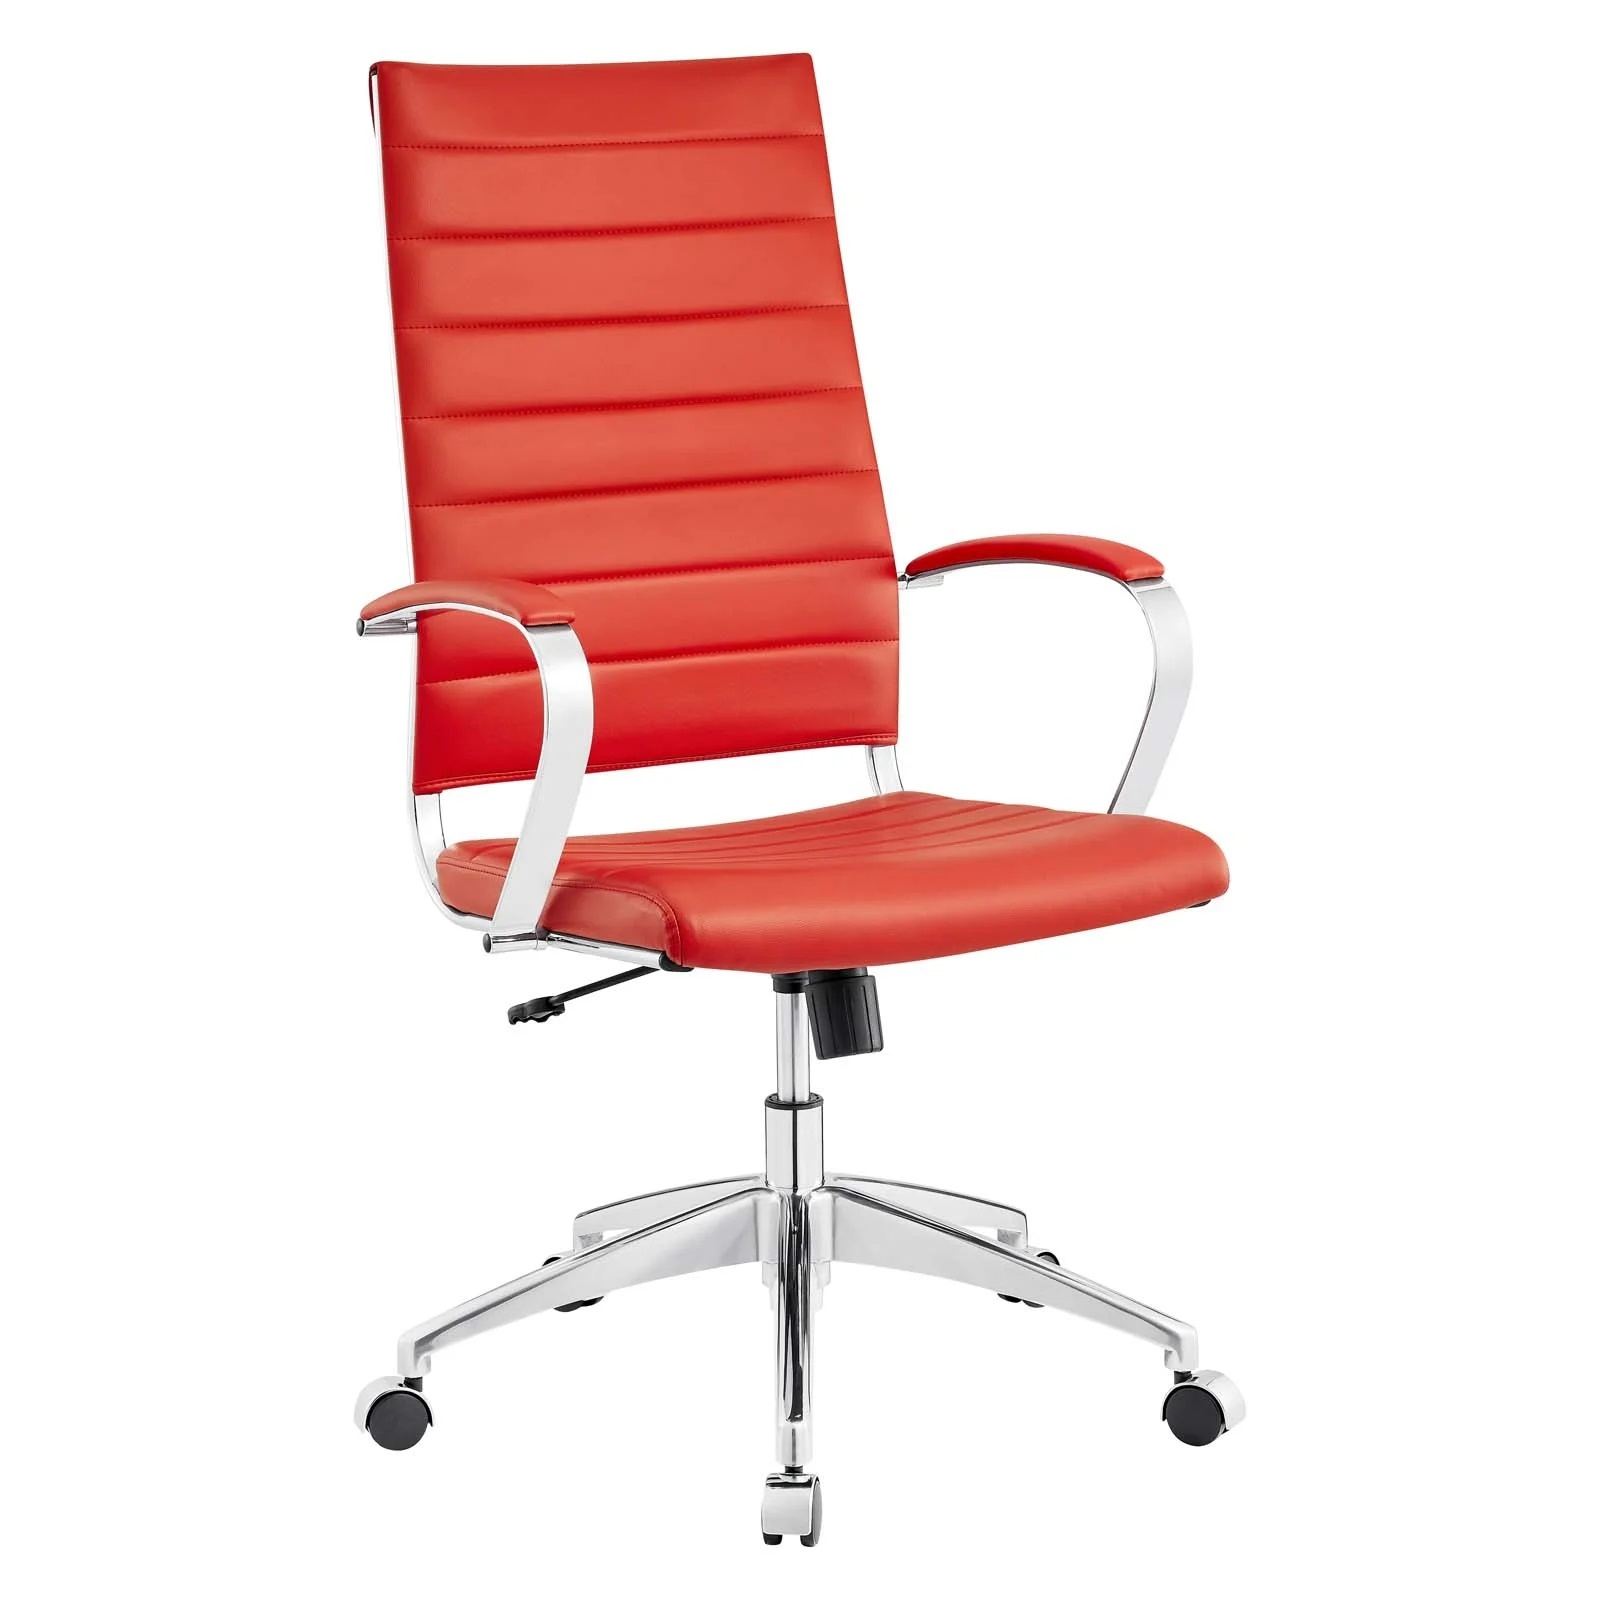 Highback Office Chair in Red